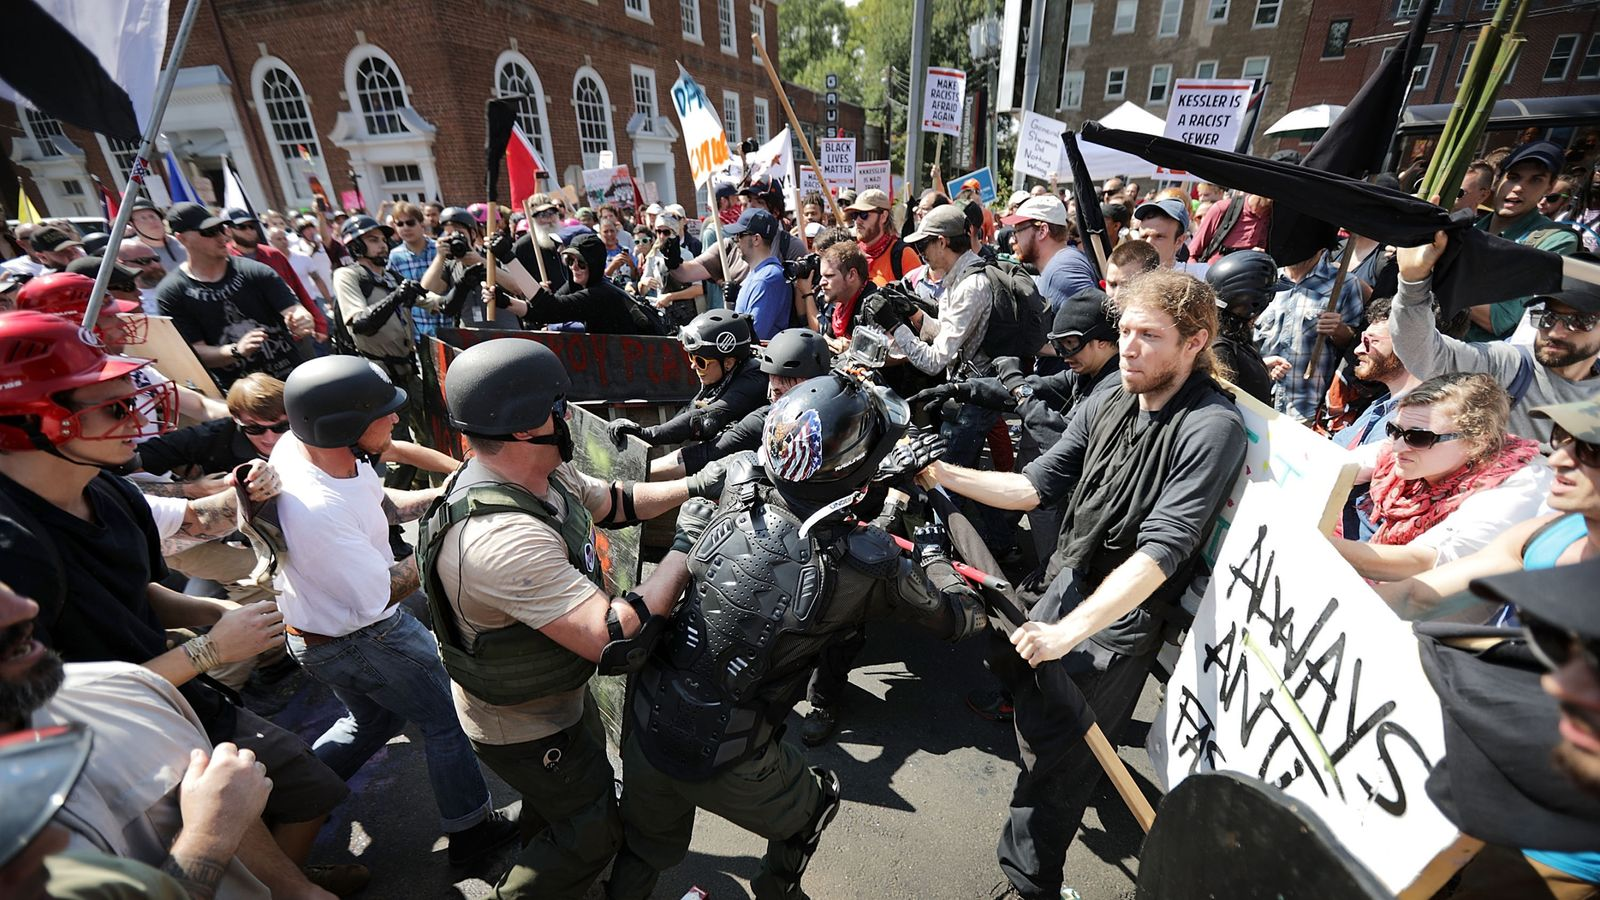 State of emergency declared in Charlottesville after rally turns violent killing One